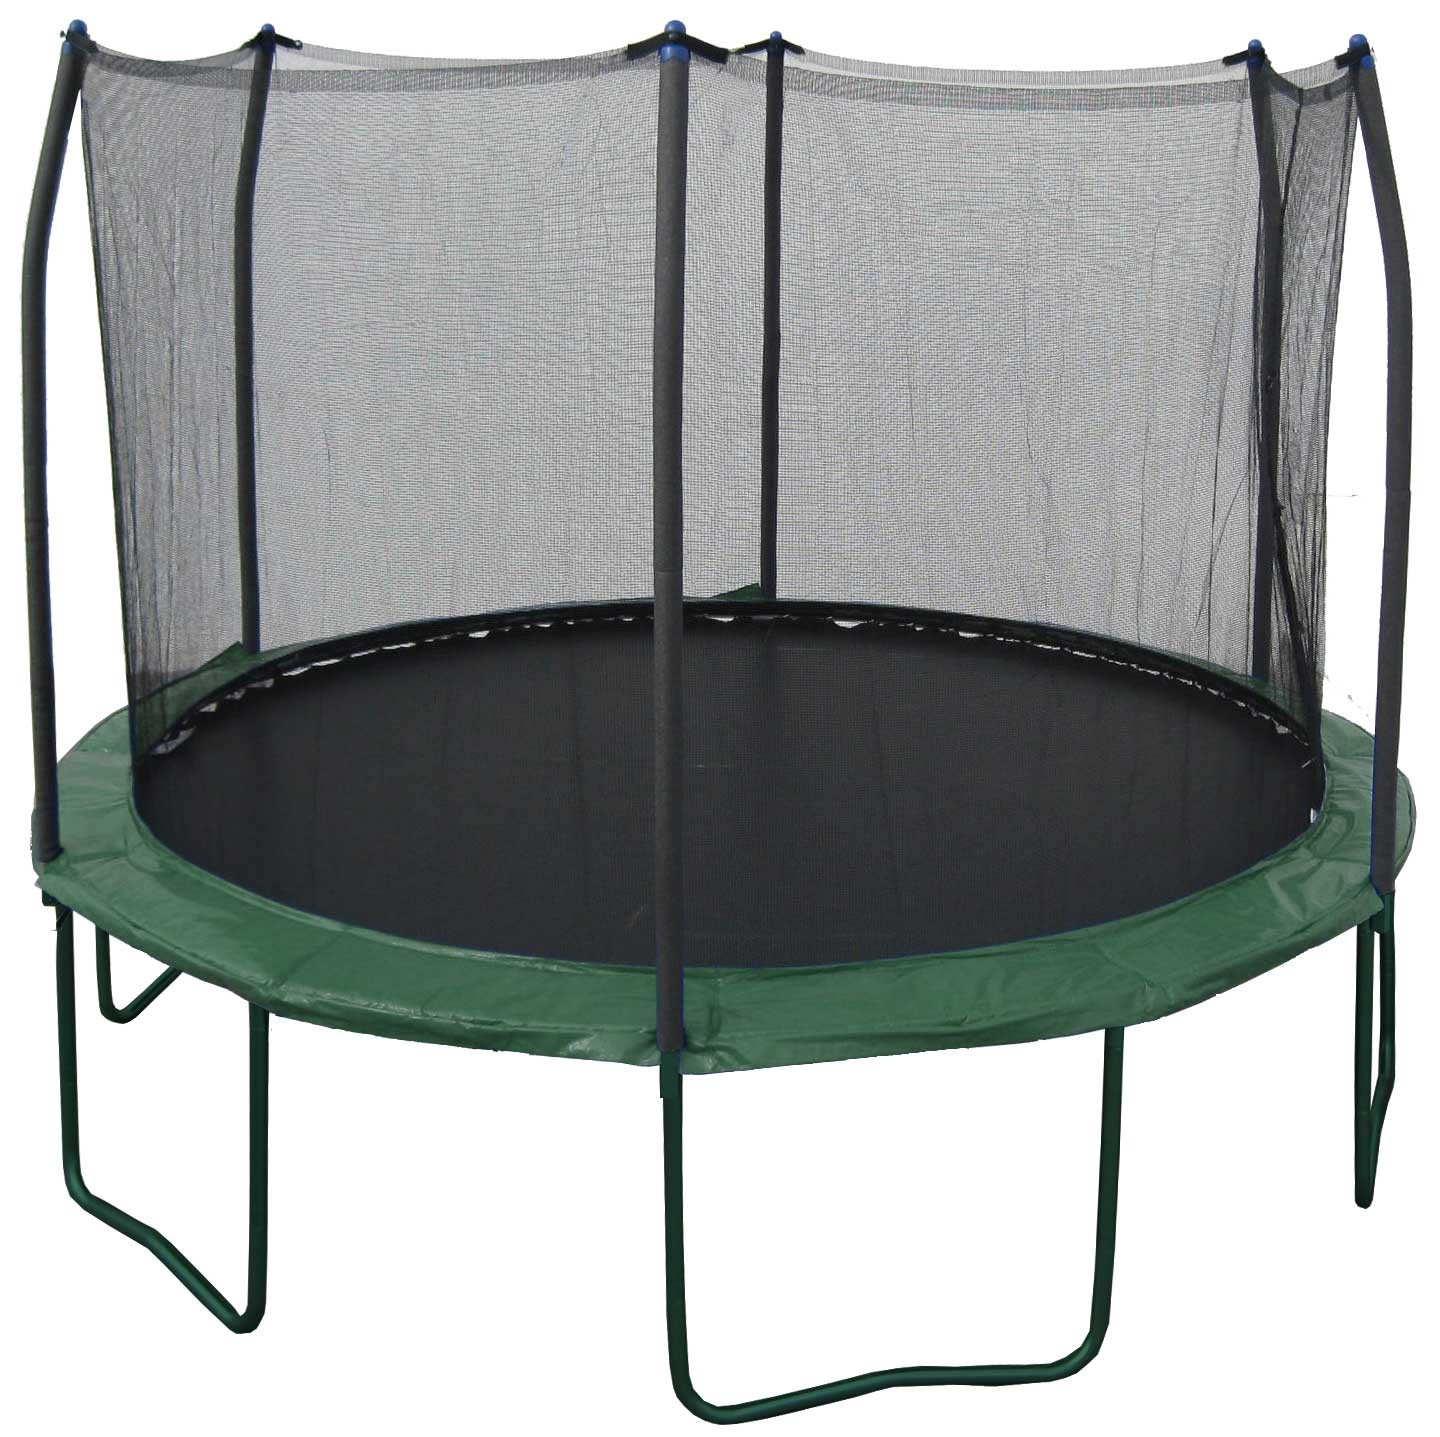 New 14 Ft. Heavy Duty Trampoline Pro w/ safety net (green)